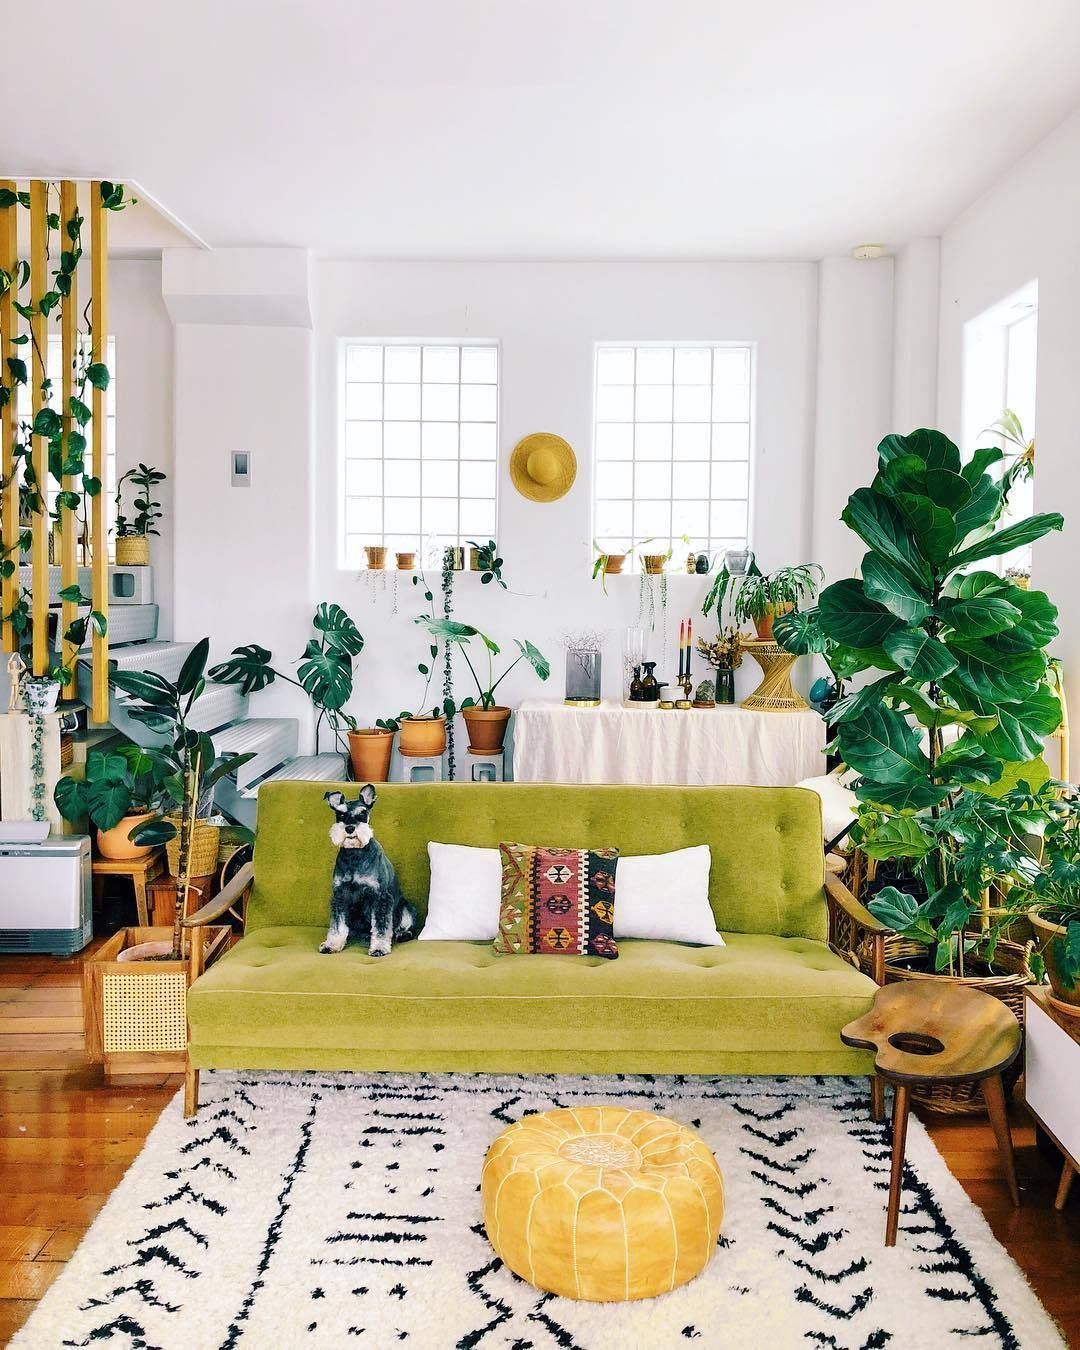 Best Of Interior Design And Architecture Ideas Minimalist Living Room Decor Colourful Living Room Small Living Room Decor